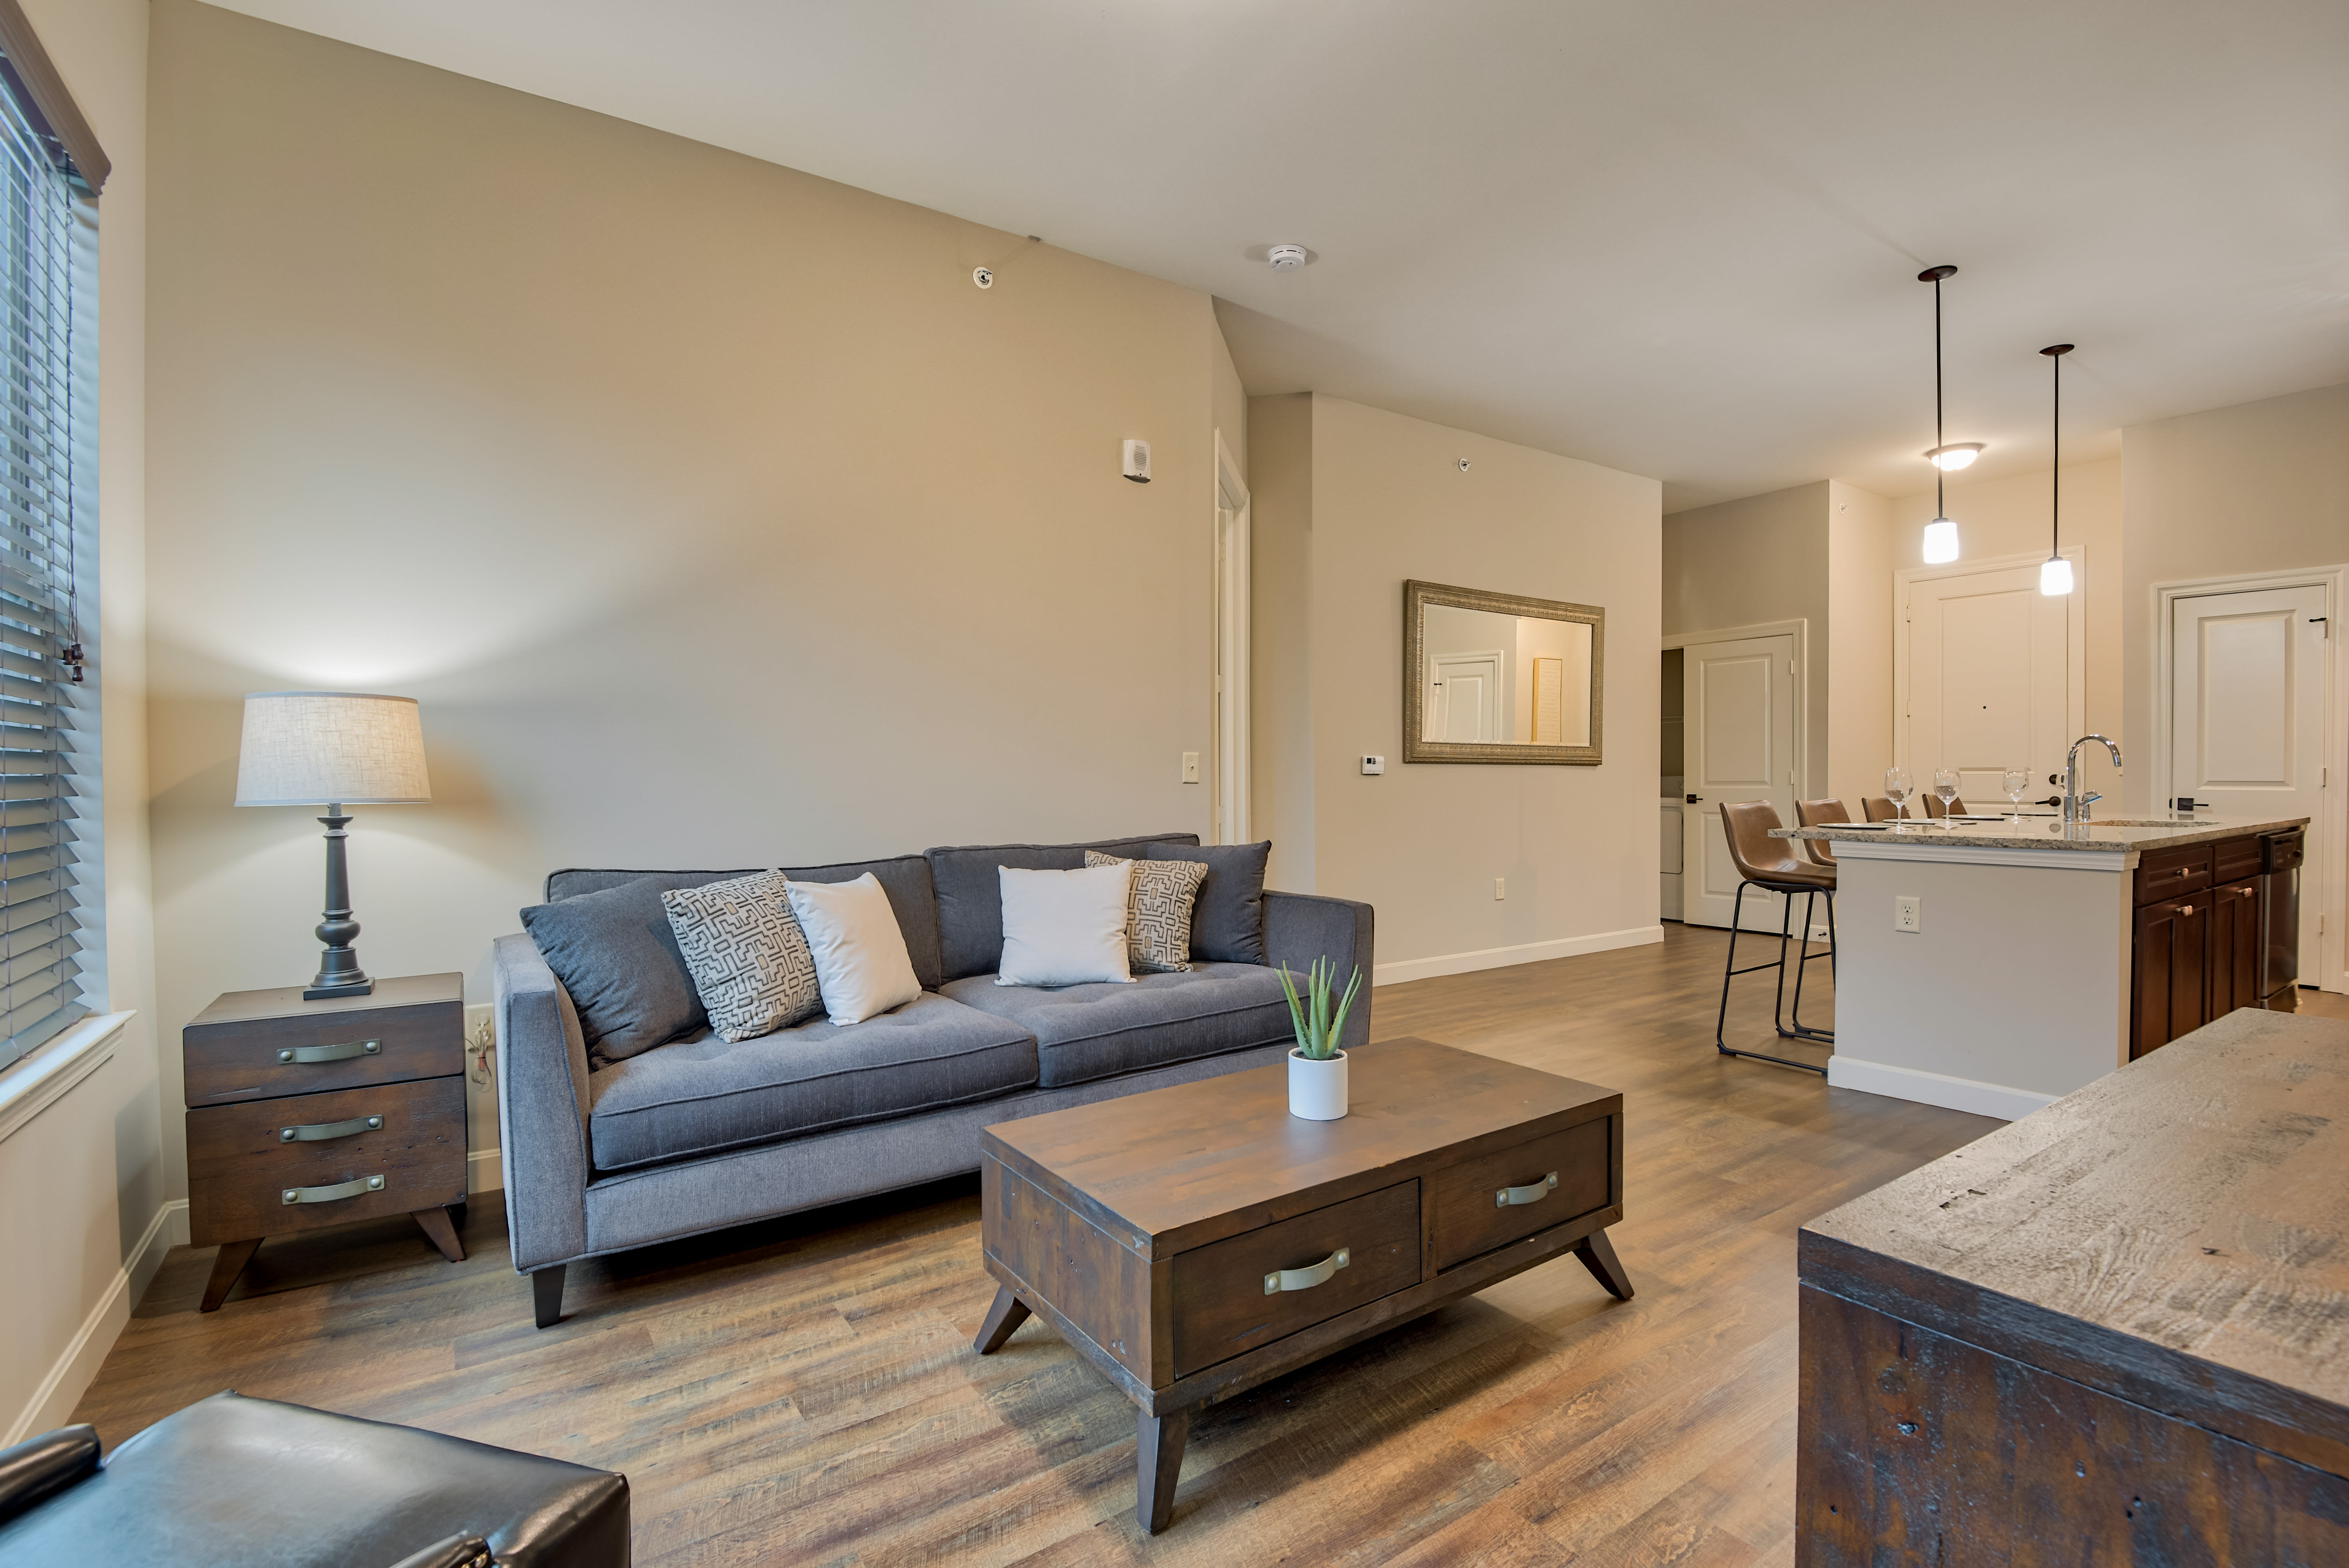 A spacious and open floor plan at Boulders at Overland Park Apartments in Overland Park, Kansas